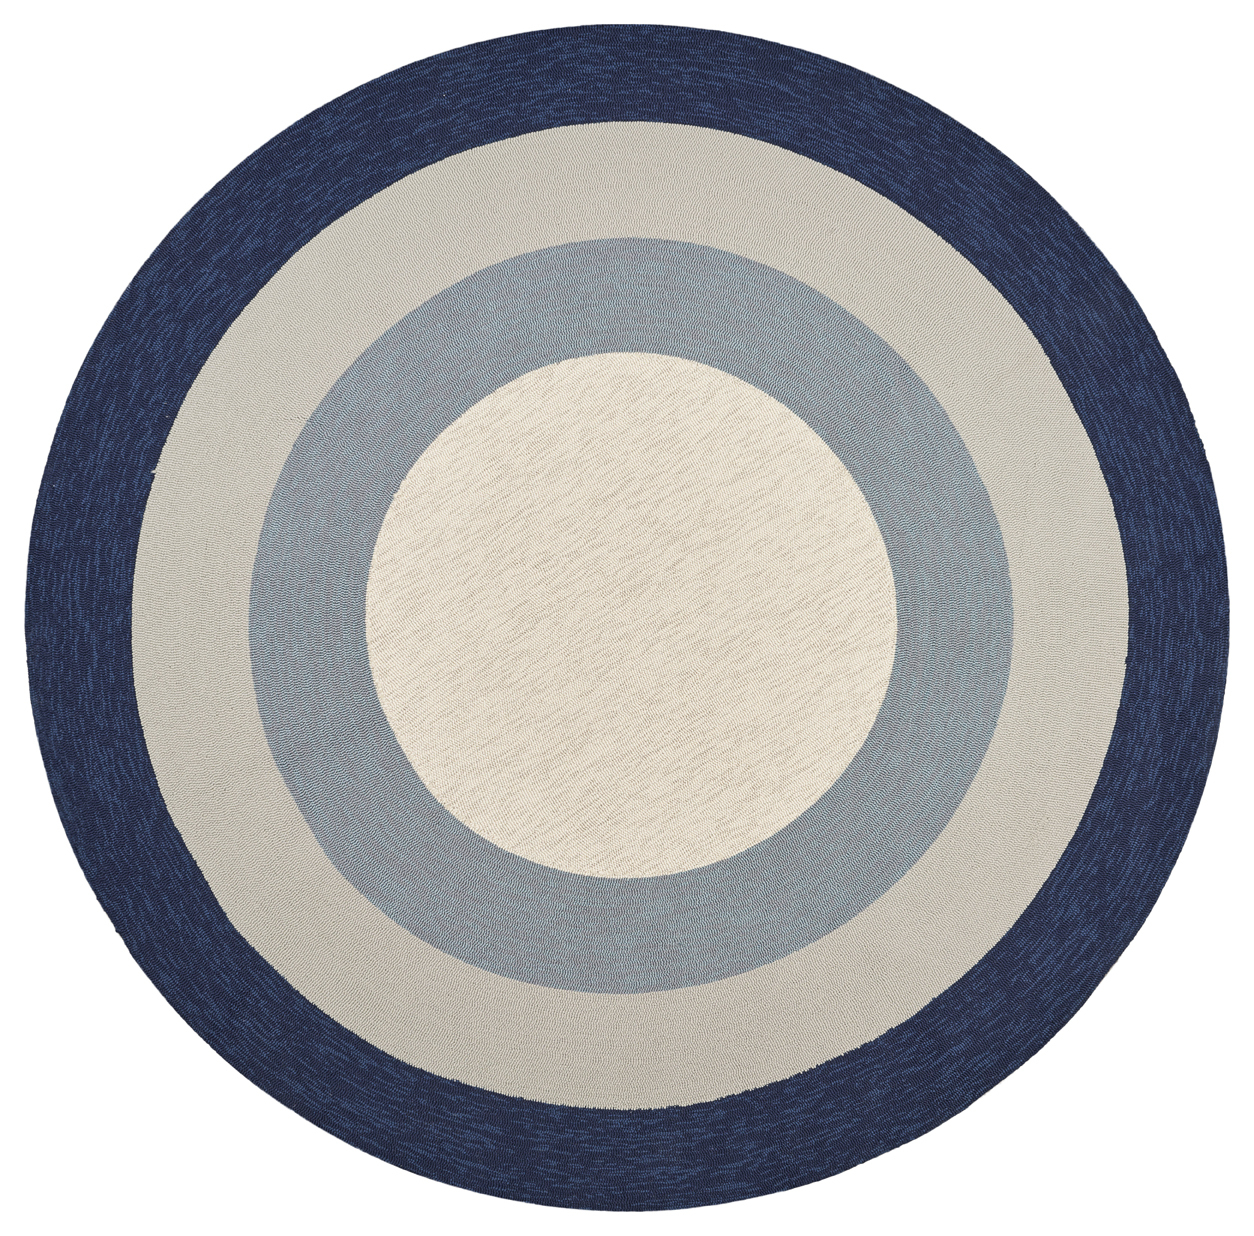 Hamptons 5229 Slate/Navy Highview